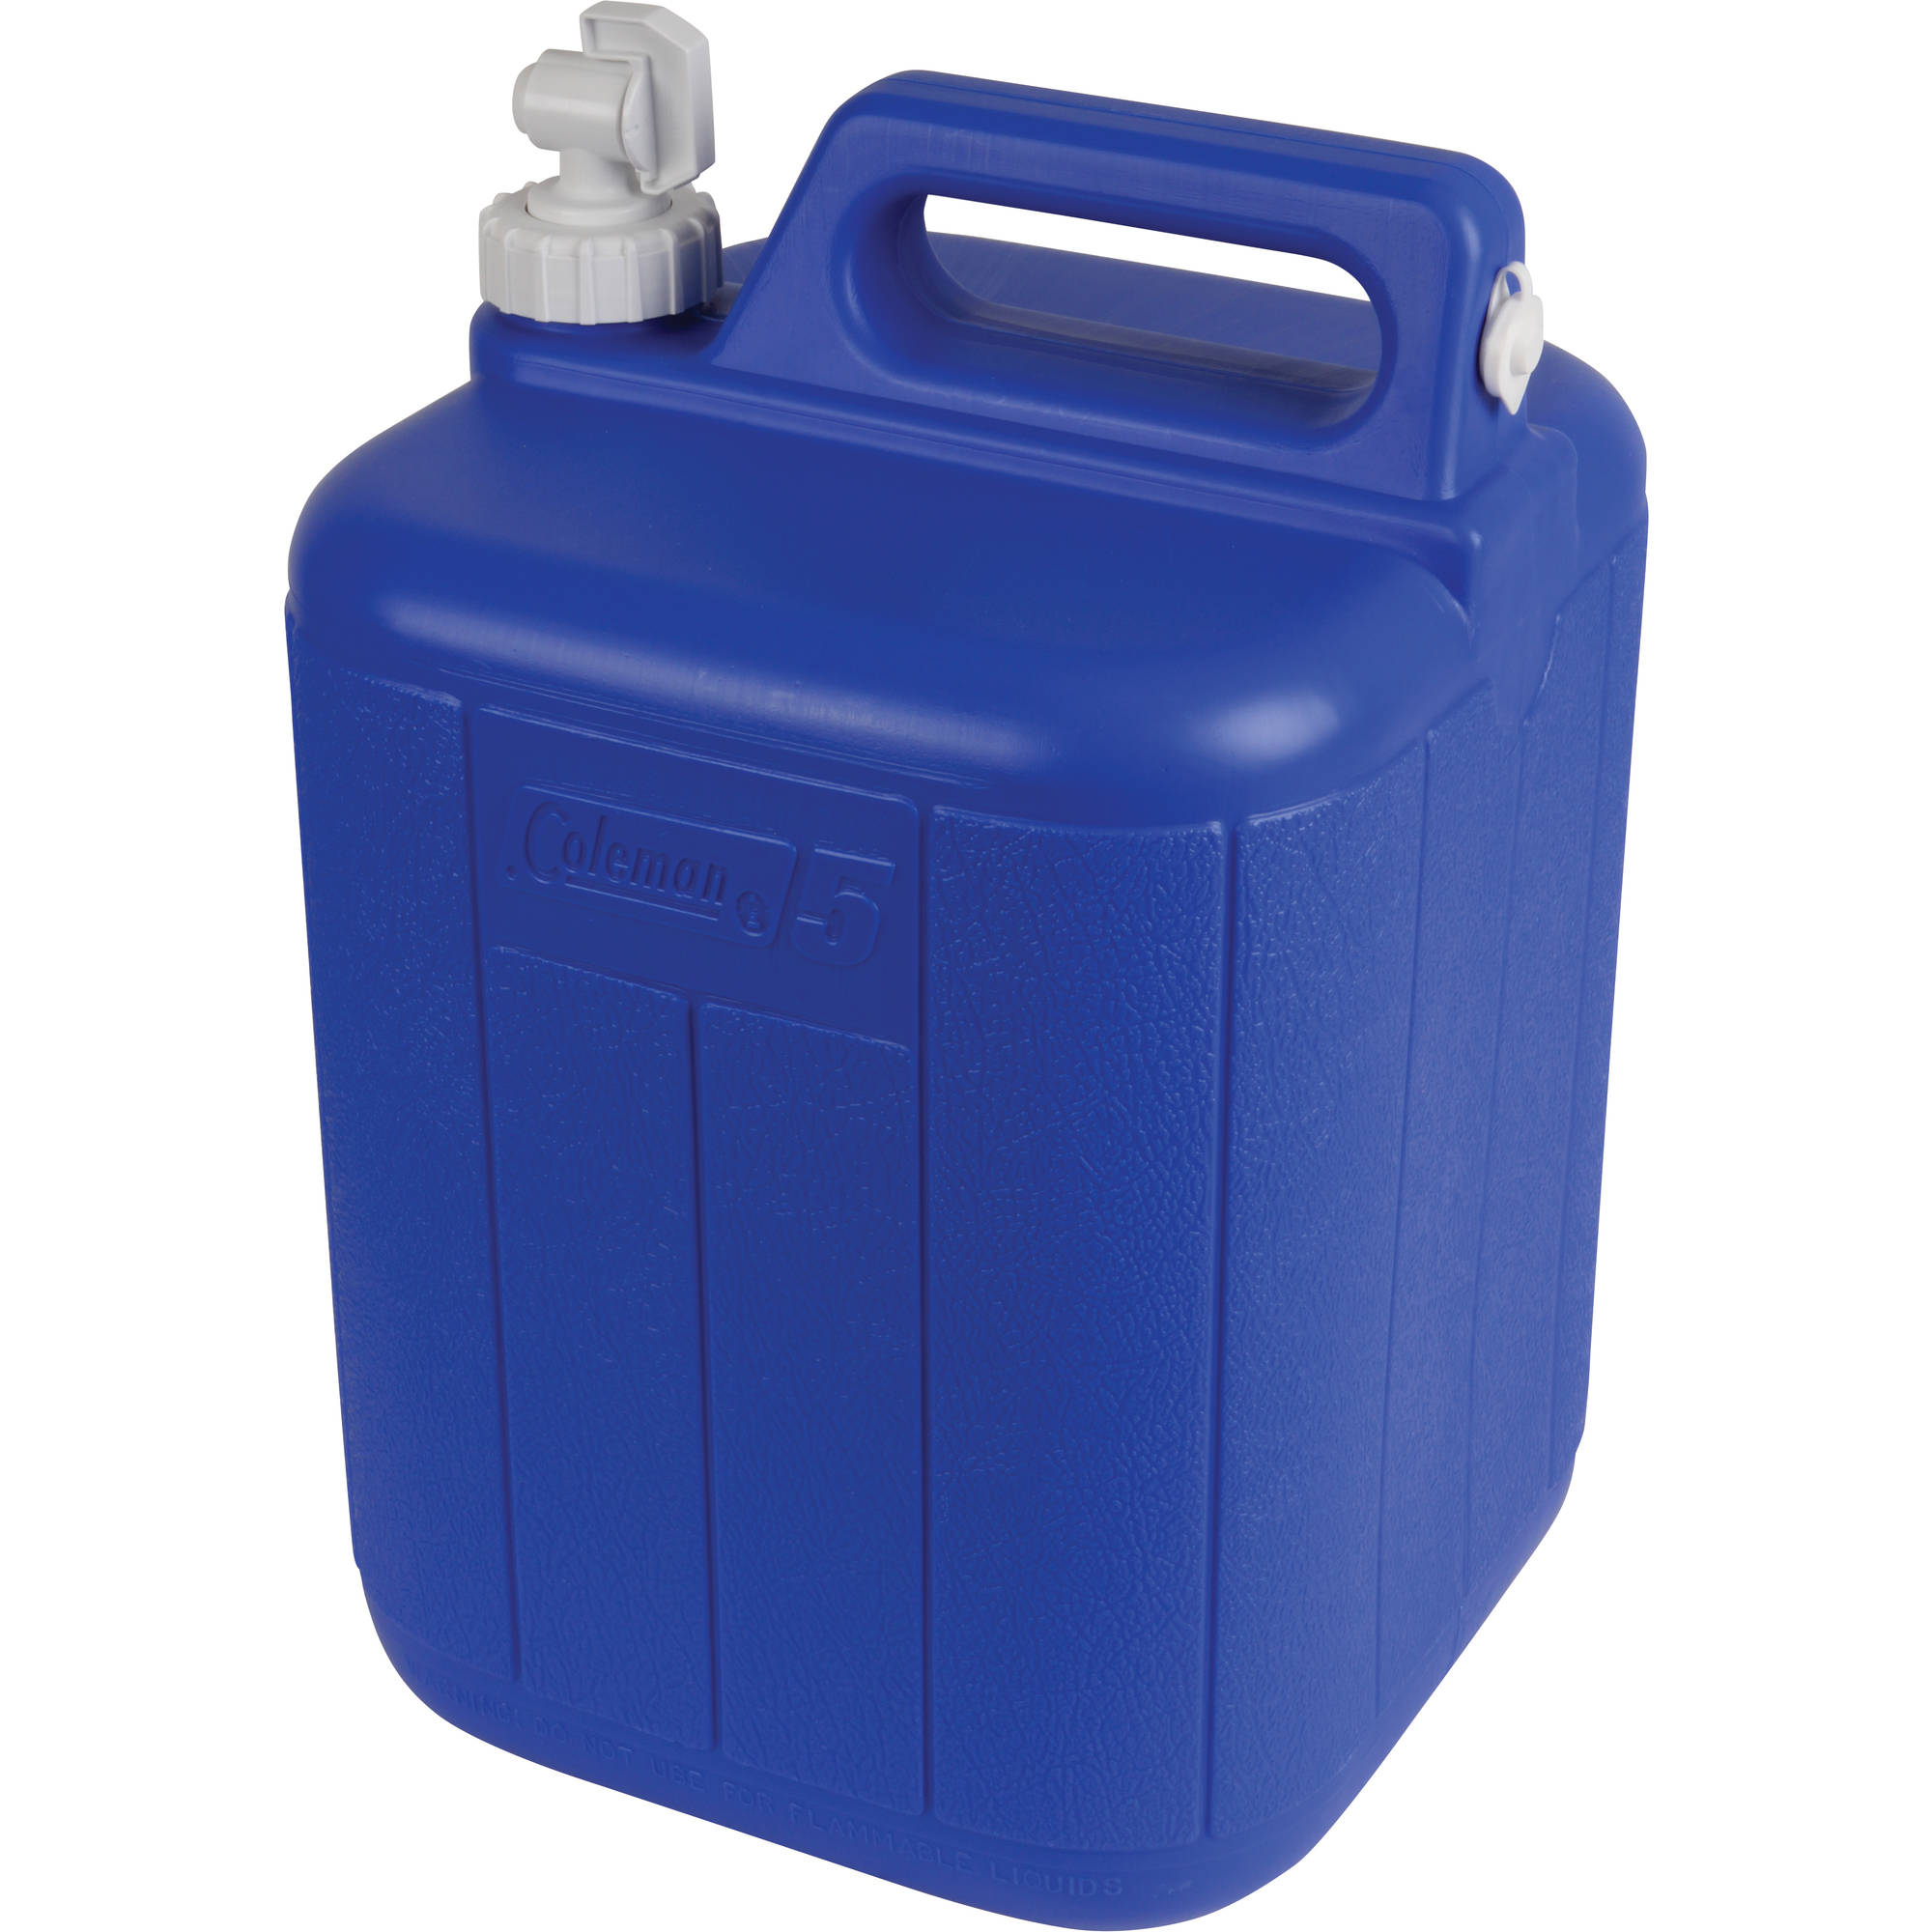 original coleman polylite 5 gallon water jug container for camping hiking blue 6784357707556 ebay. Black Bedroom Furniture Sets. Home Design Ideas